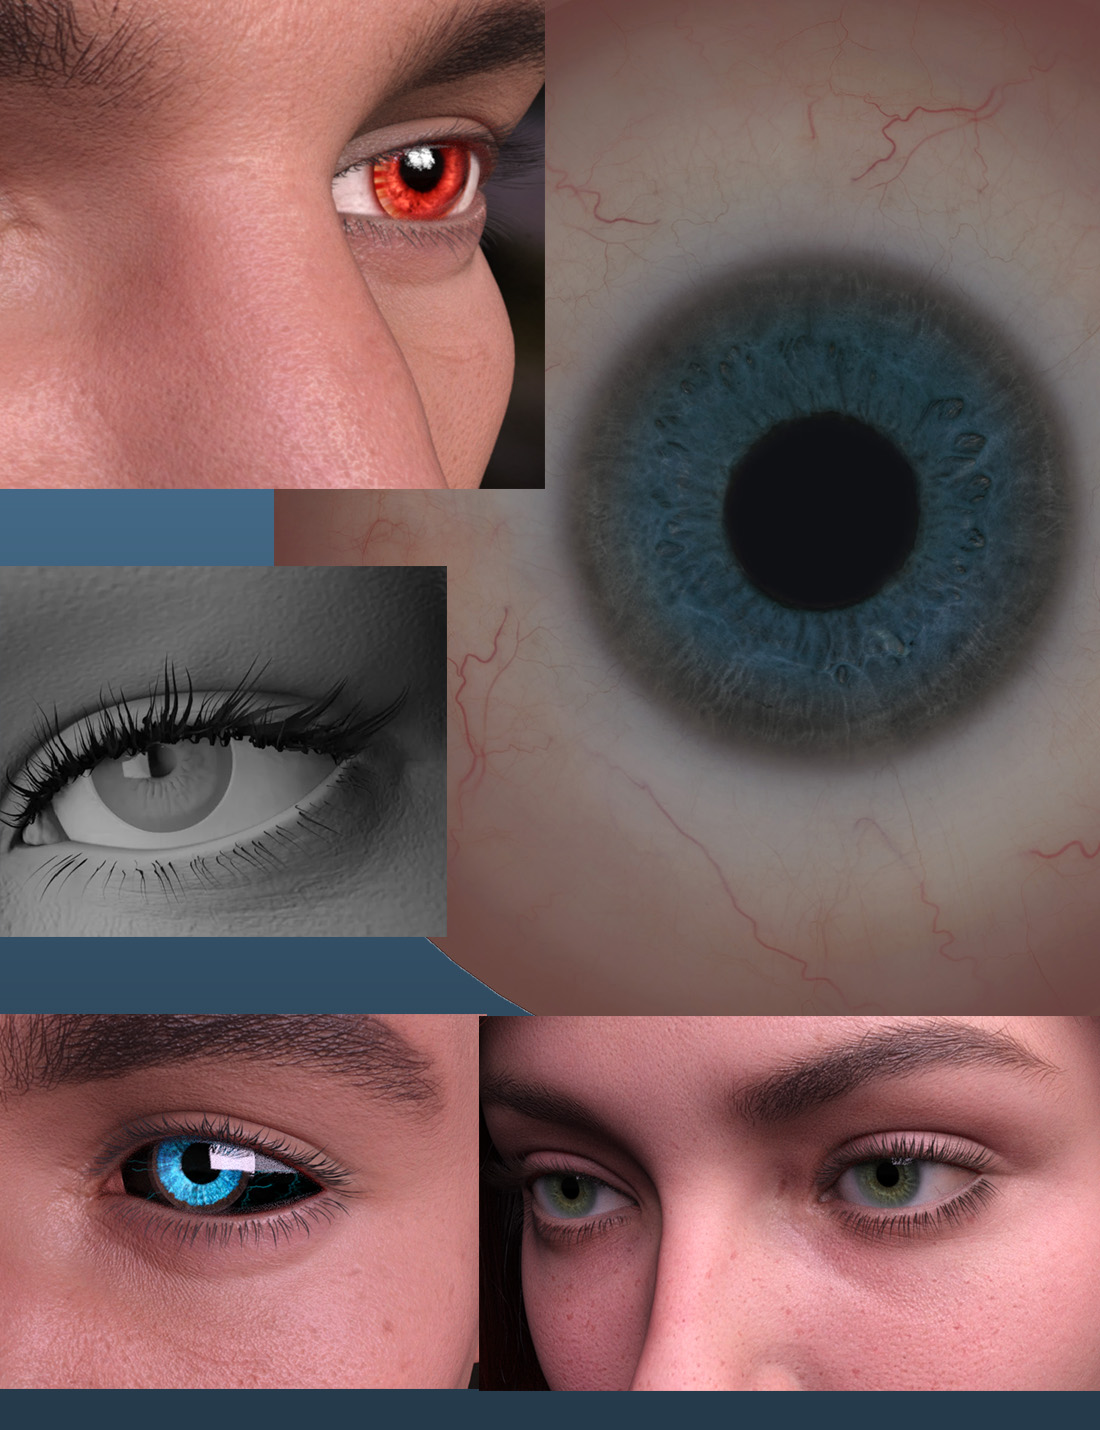 Hyperrealistic Eyes for Genesis 8.1 by: I2D, 3D Models by Daz 3D